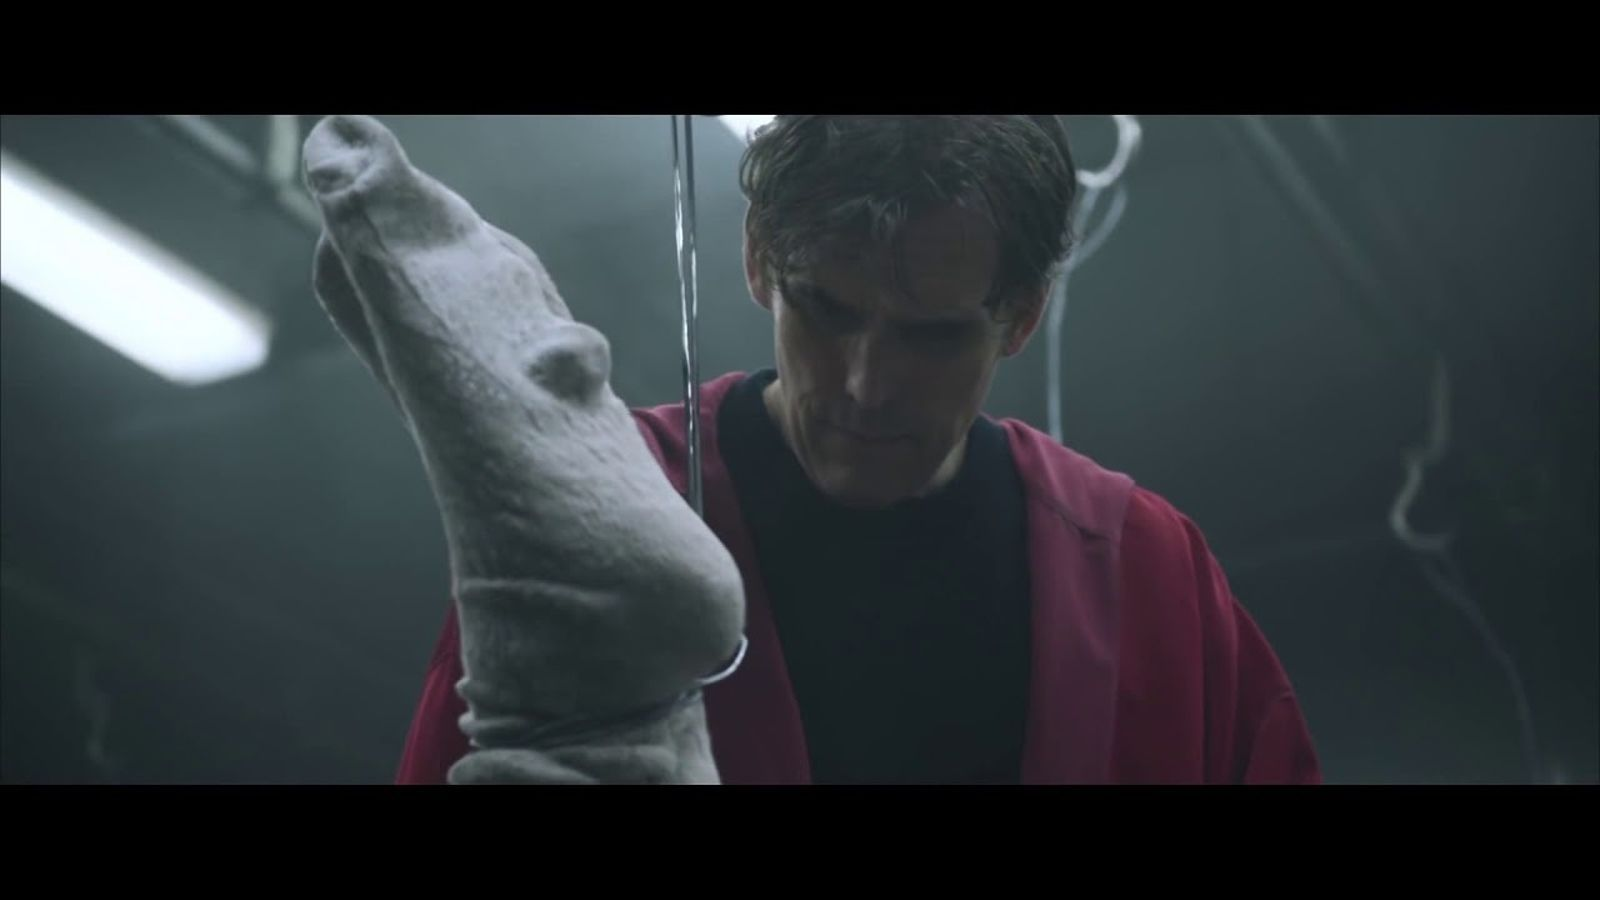 Tràiler de 'The house that Jack built', de Lars von Trier